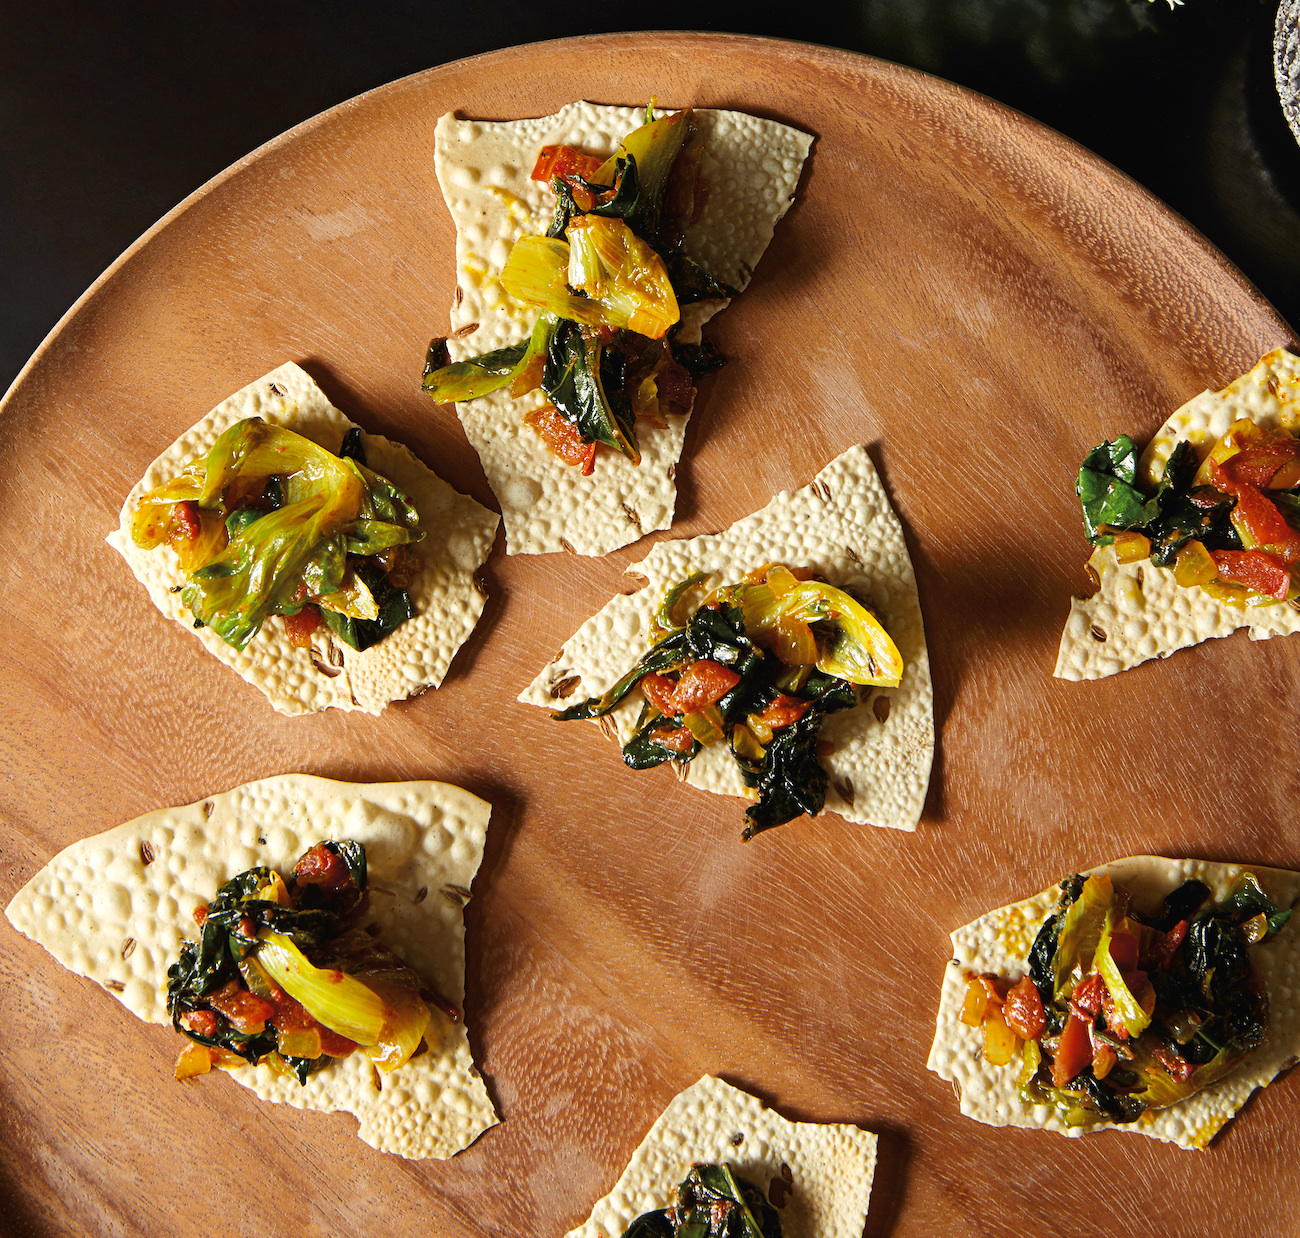 Gluten free, vegan appetizer with Indian spices